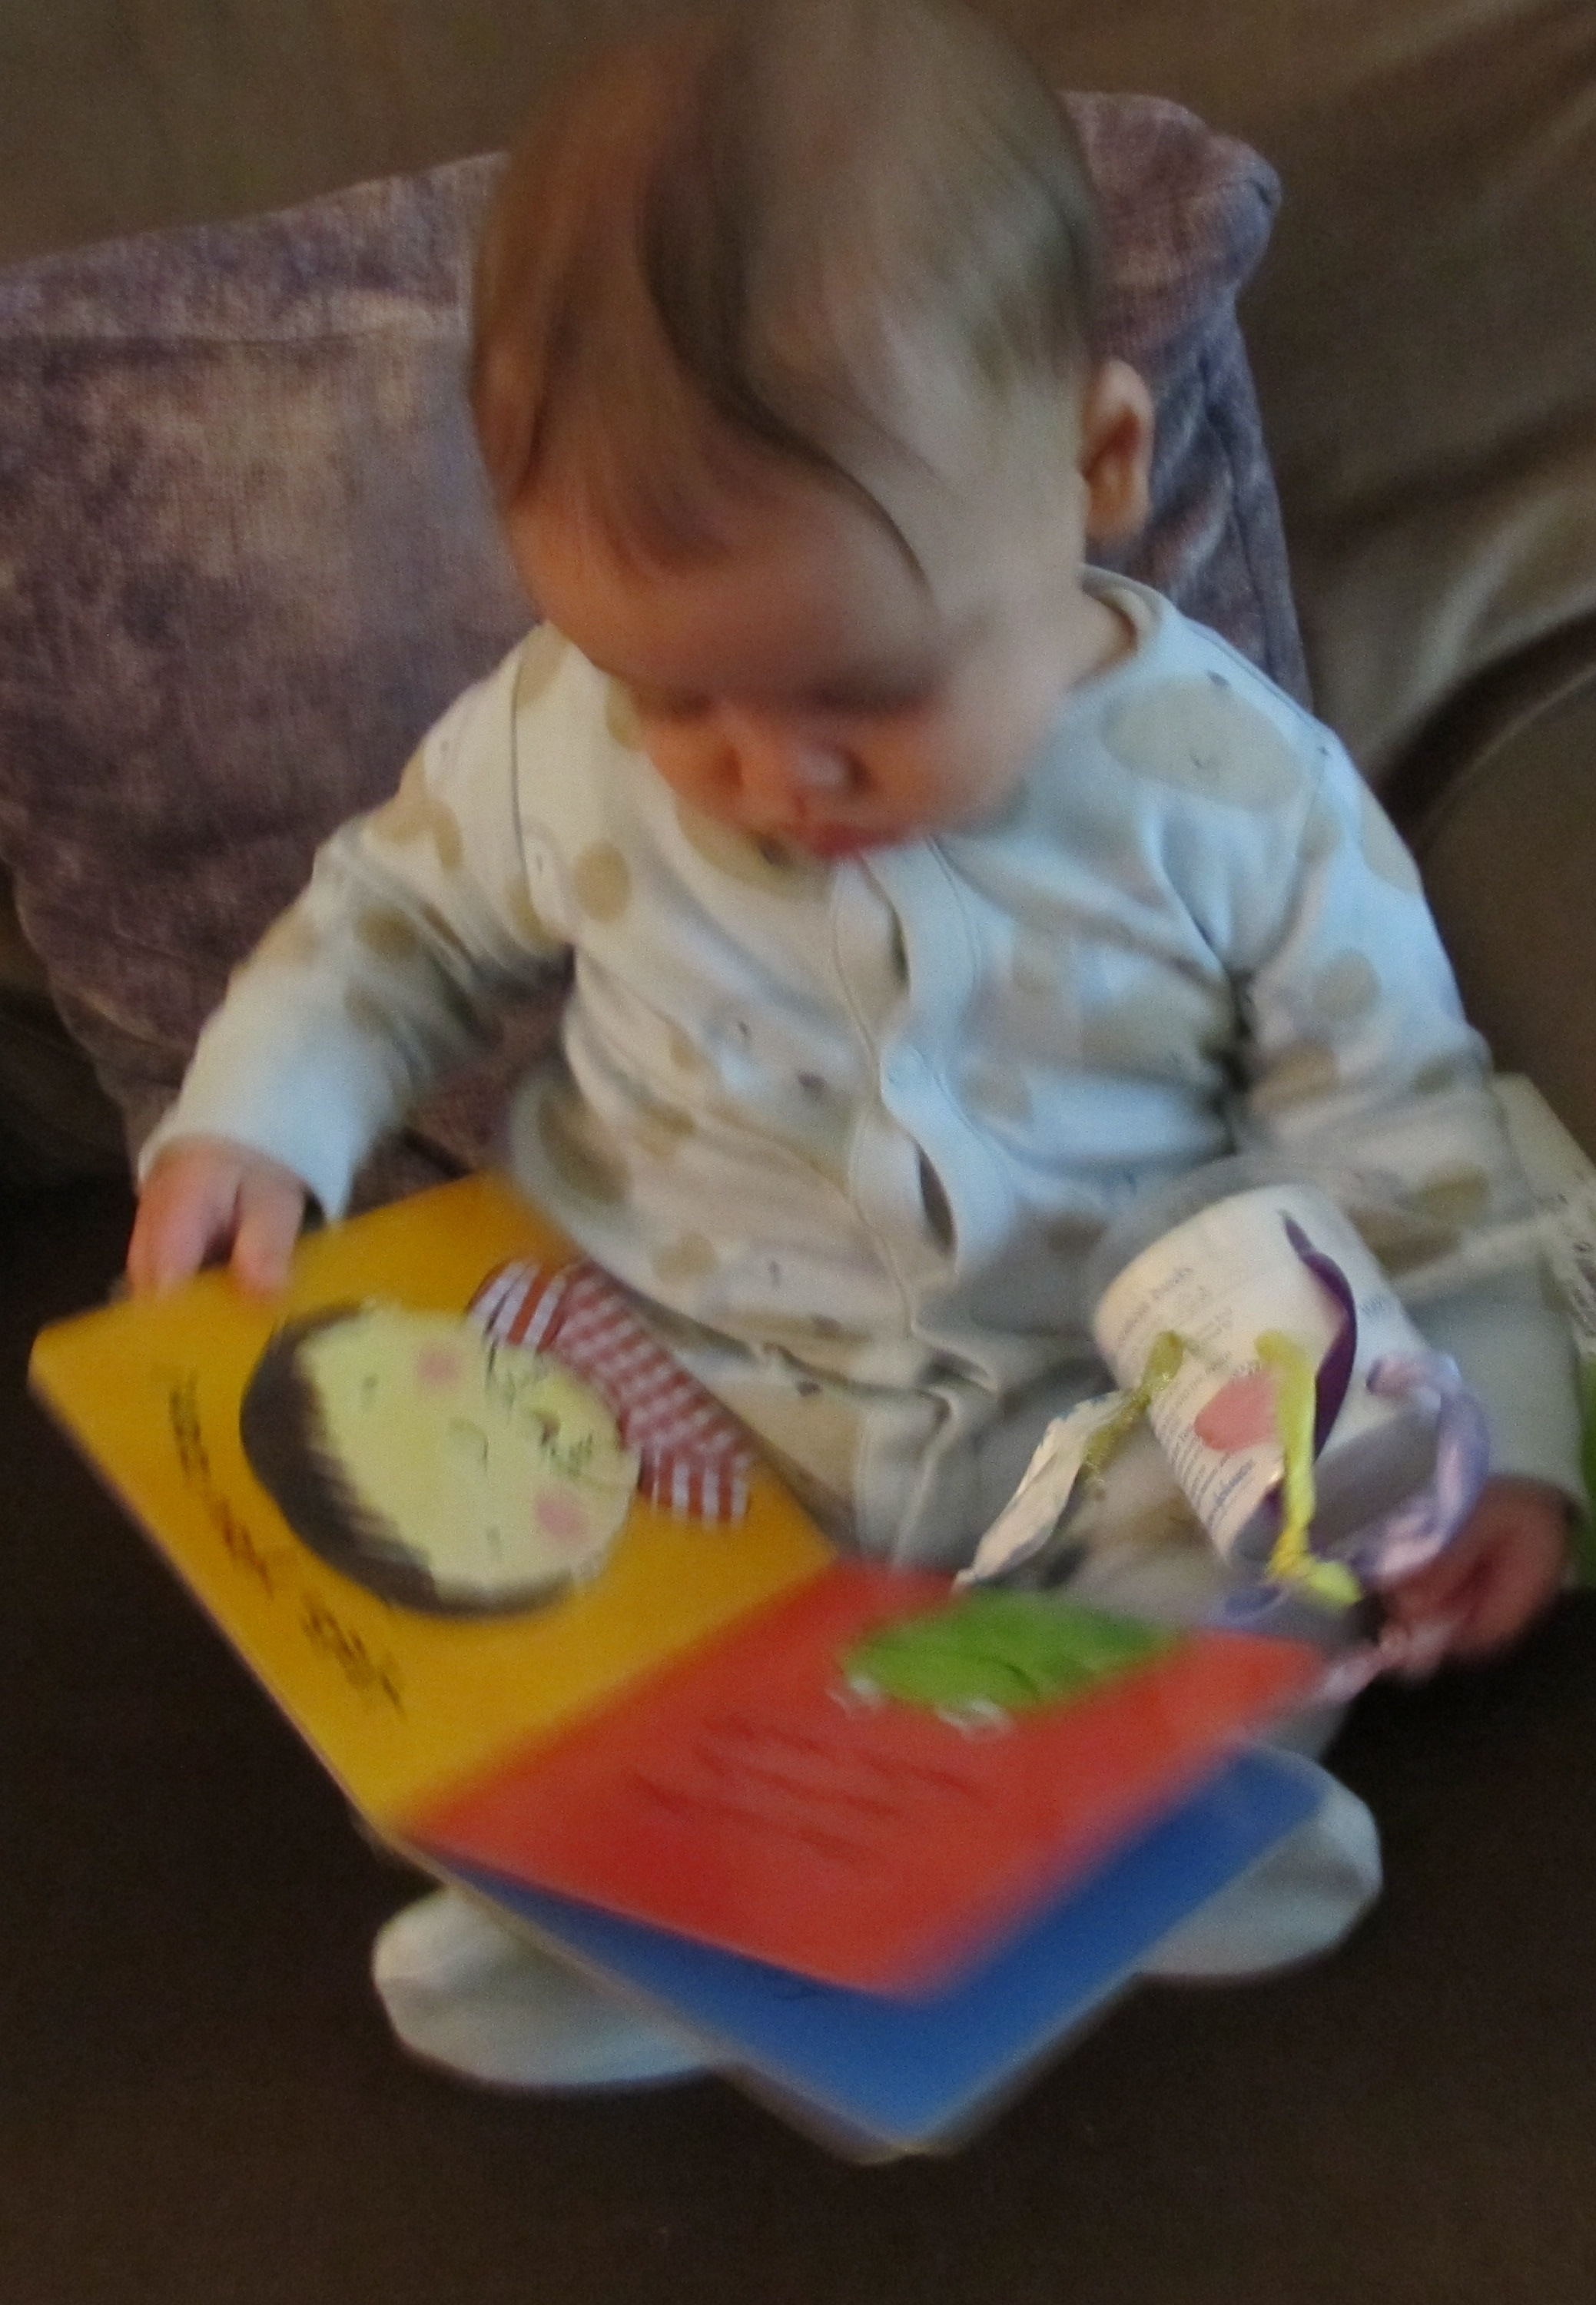 Infant Toddler Books Reading Baby Brain